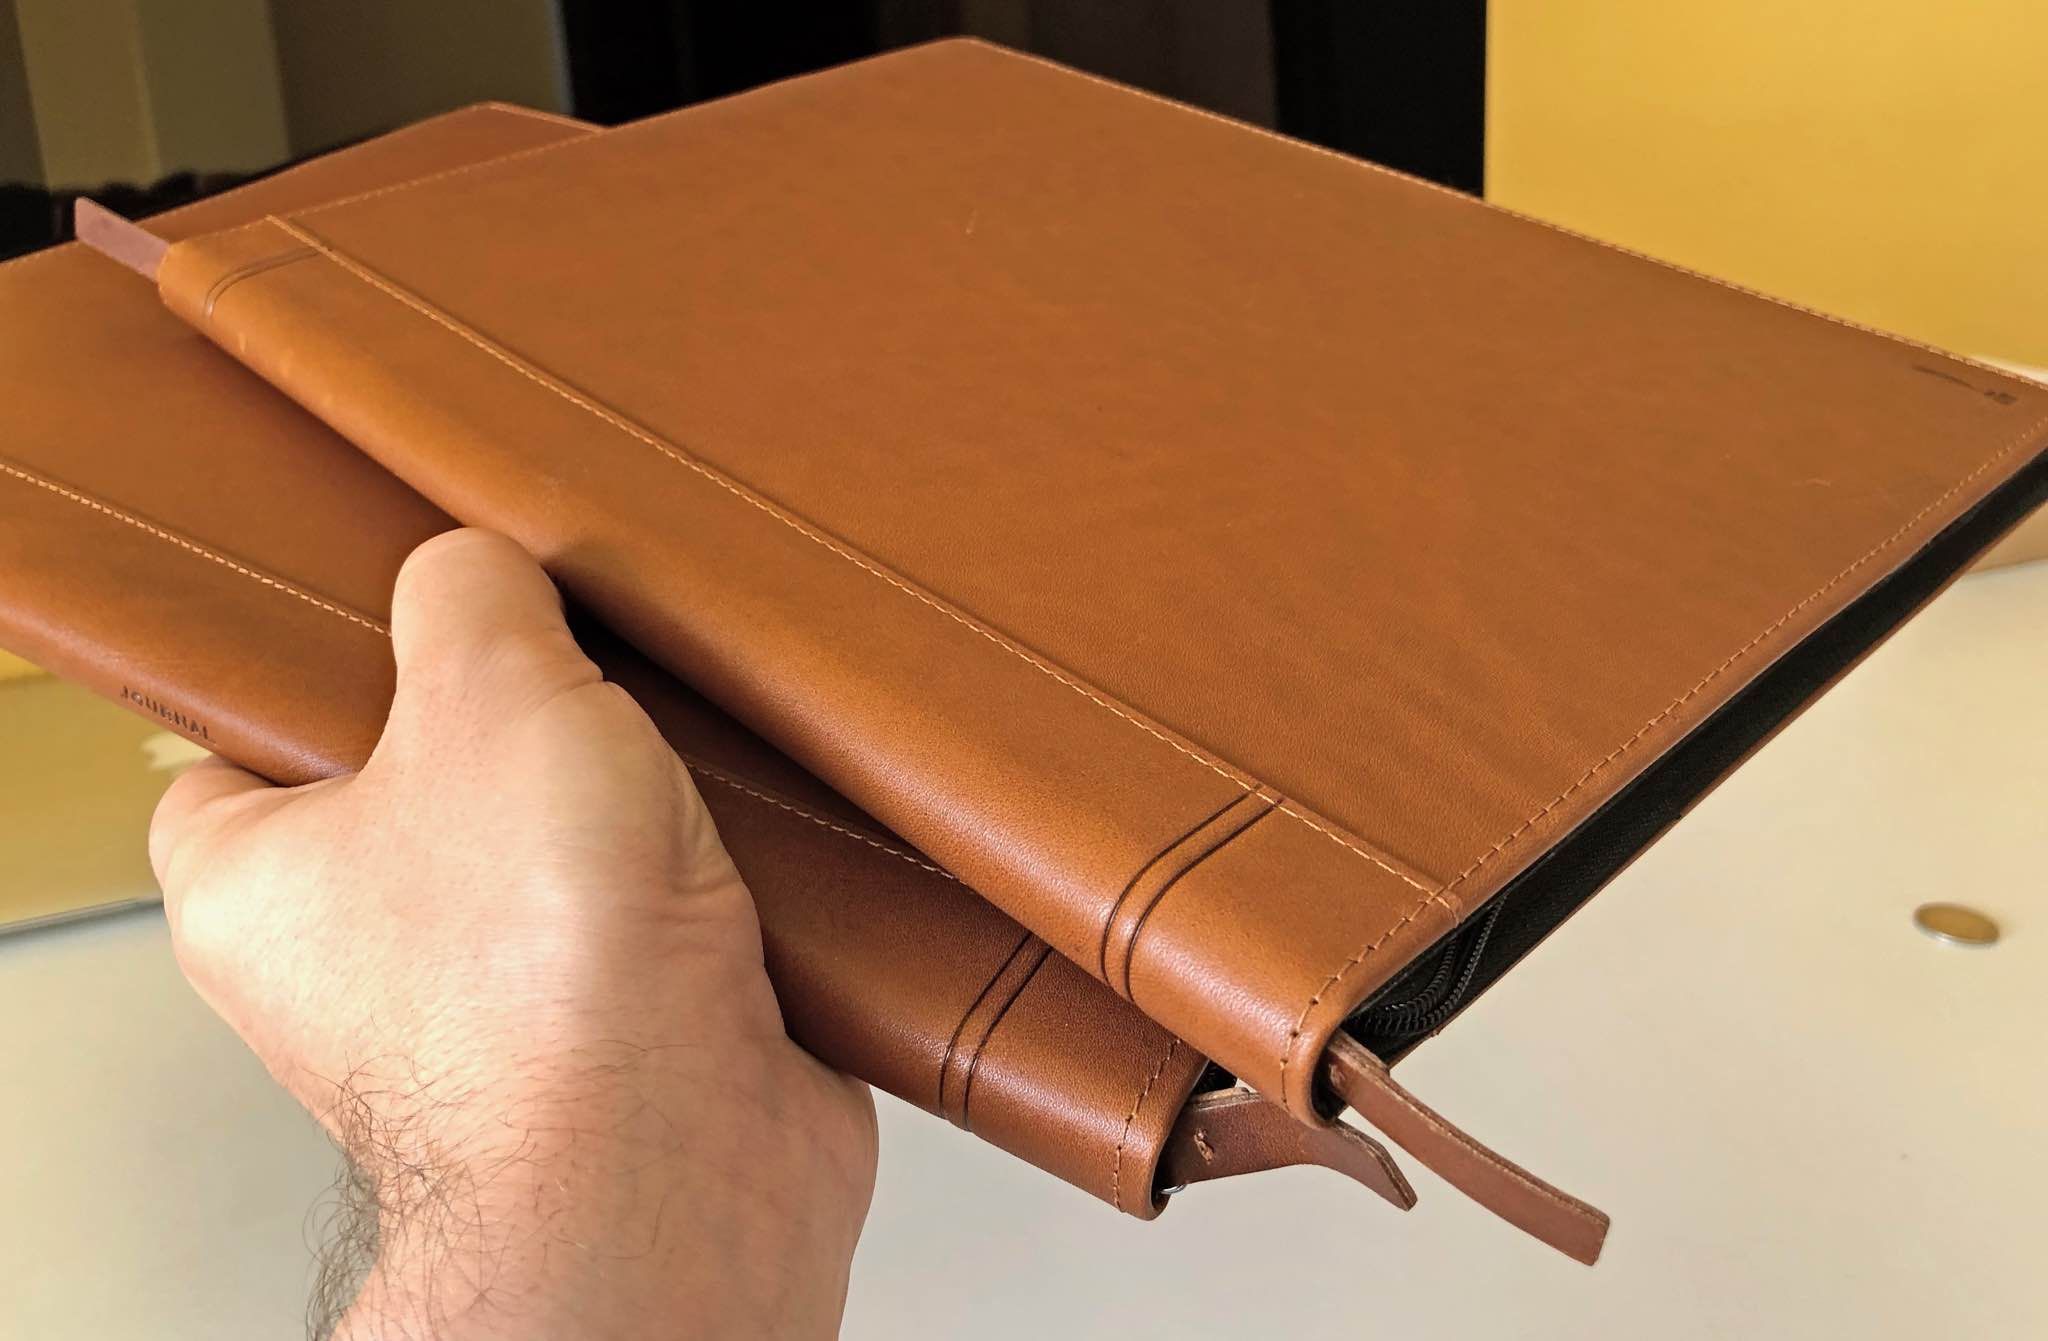 Leather cases for notebooks